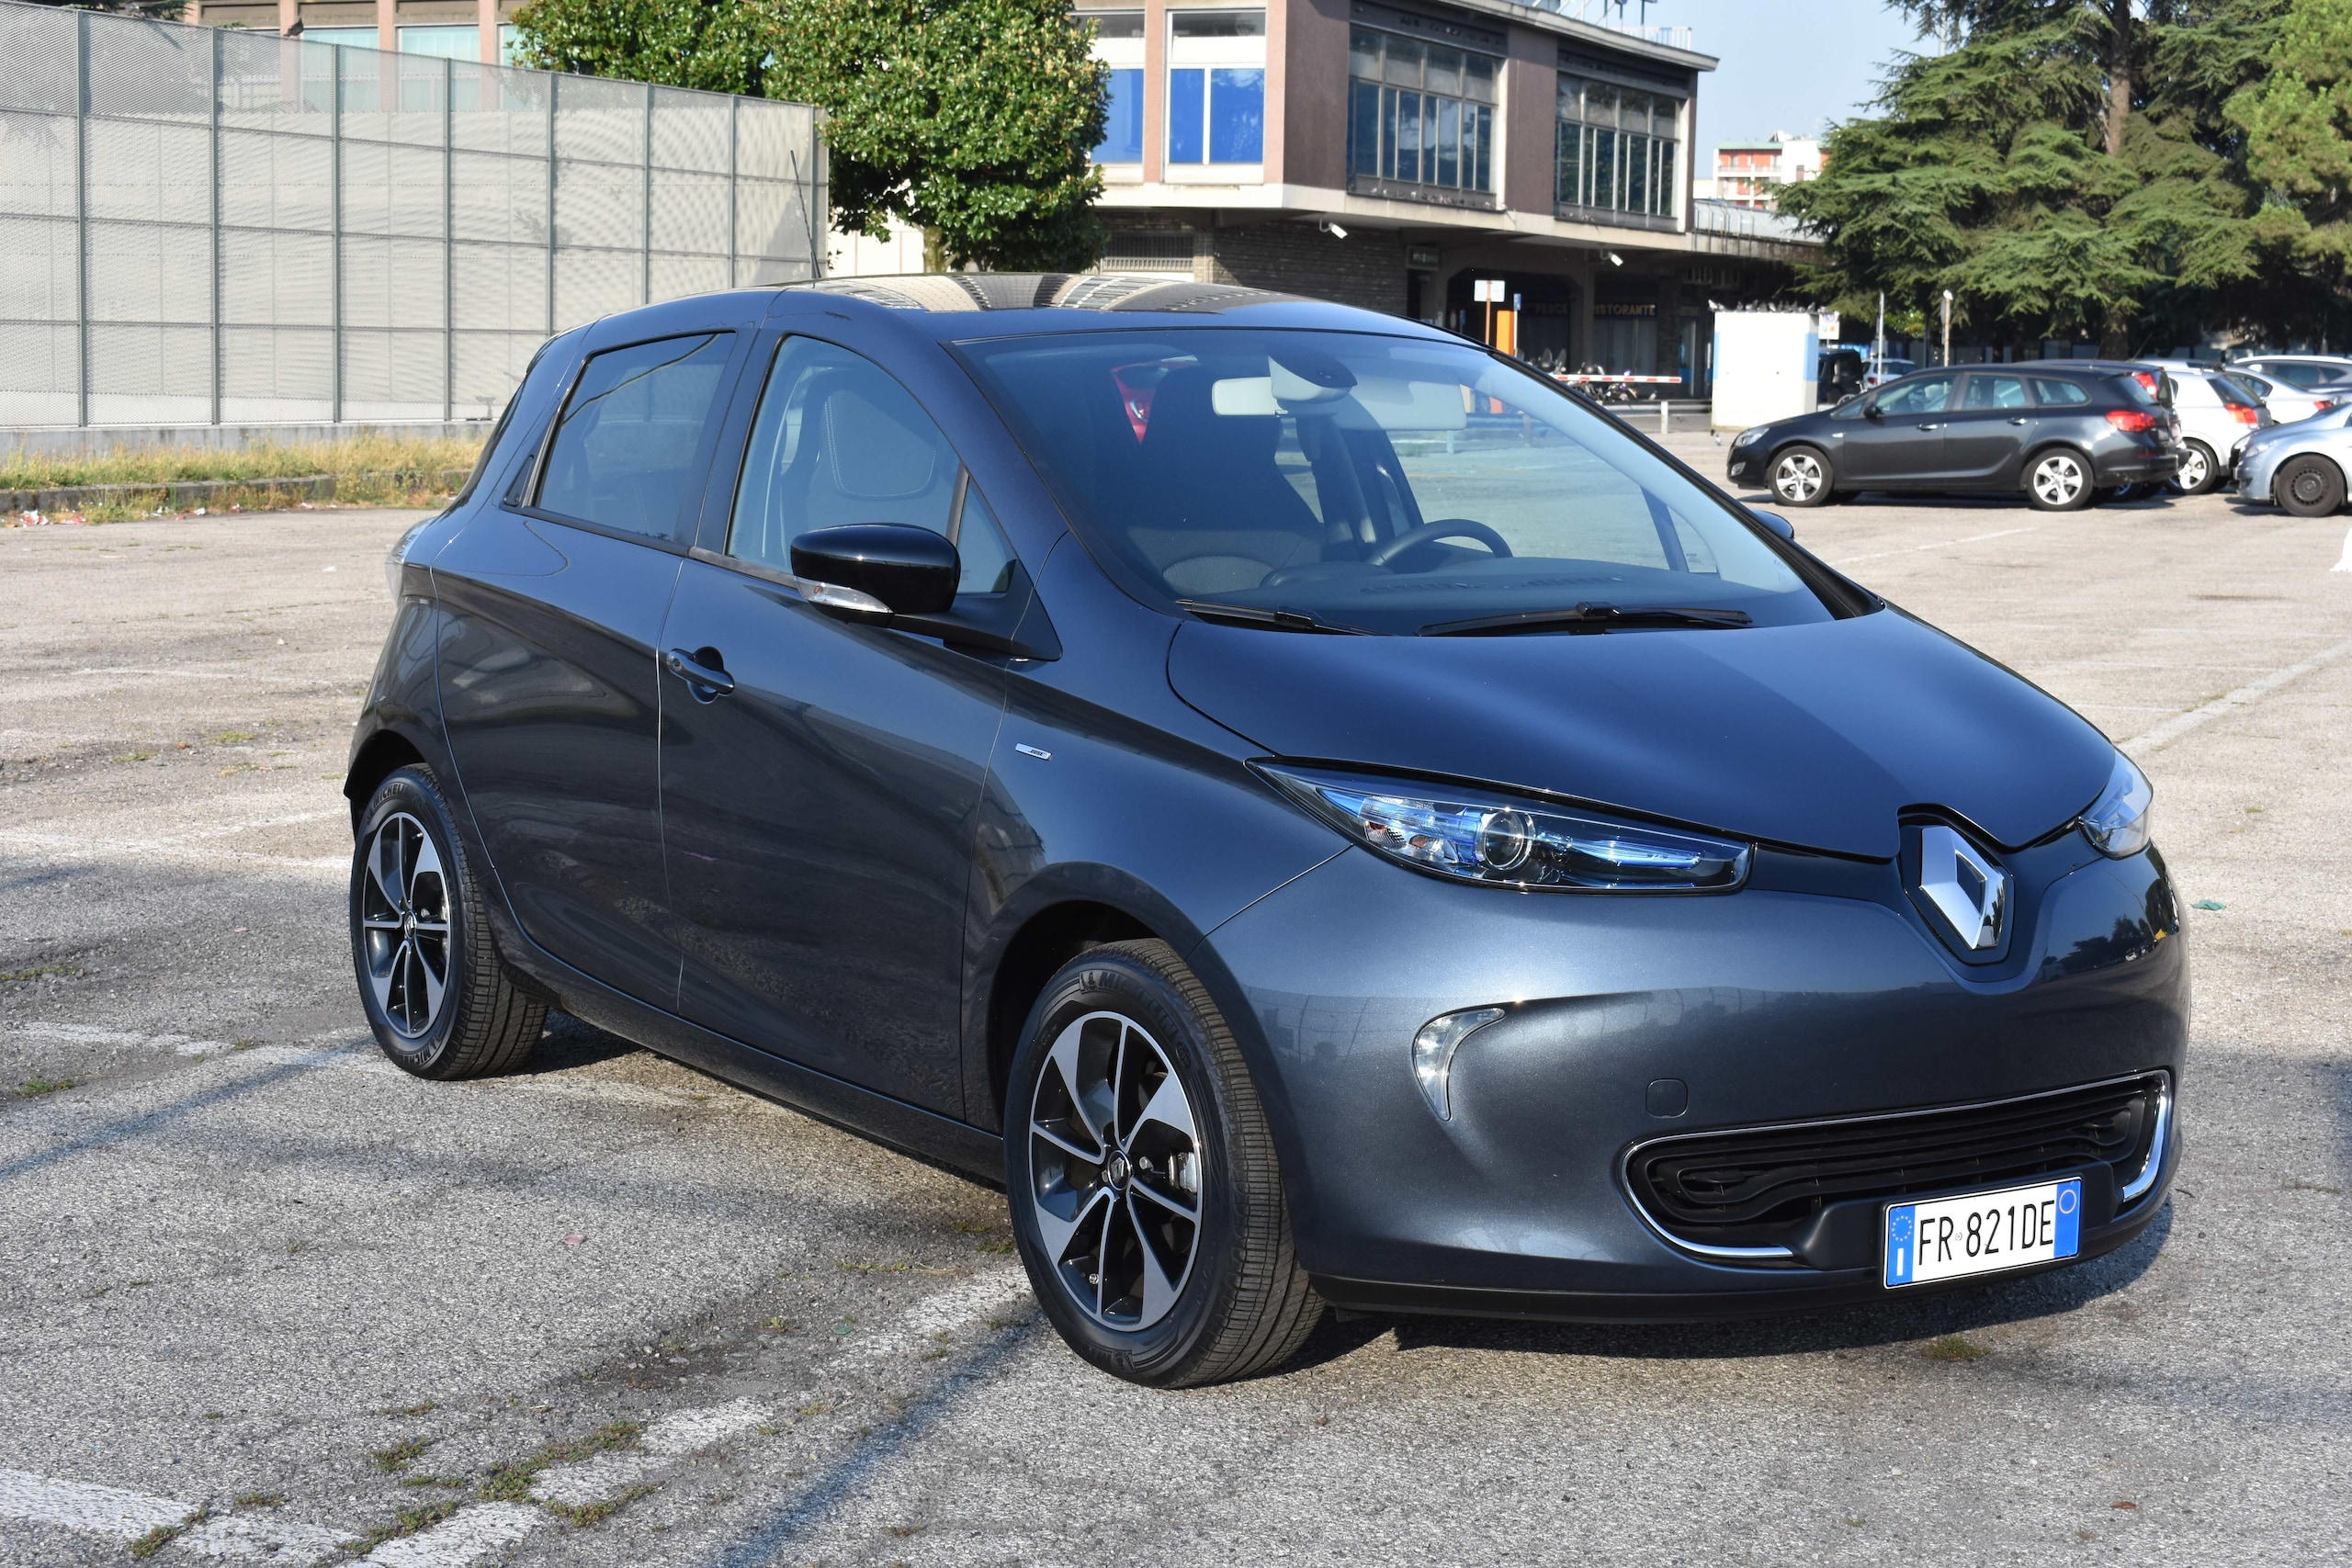 Test comparativo Citroën E-Mehari Hard Top e Renault Zoe Intens R110